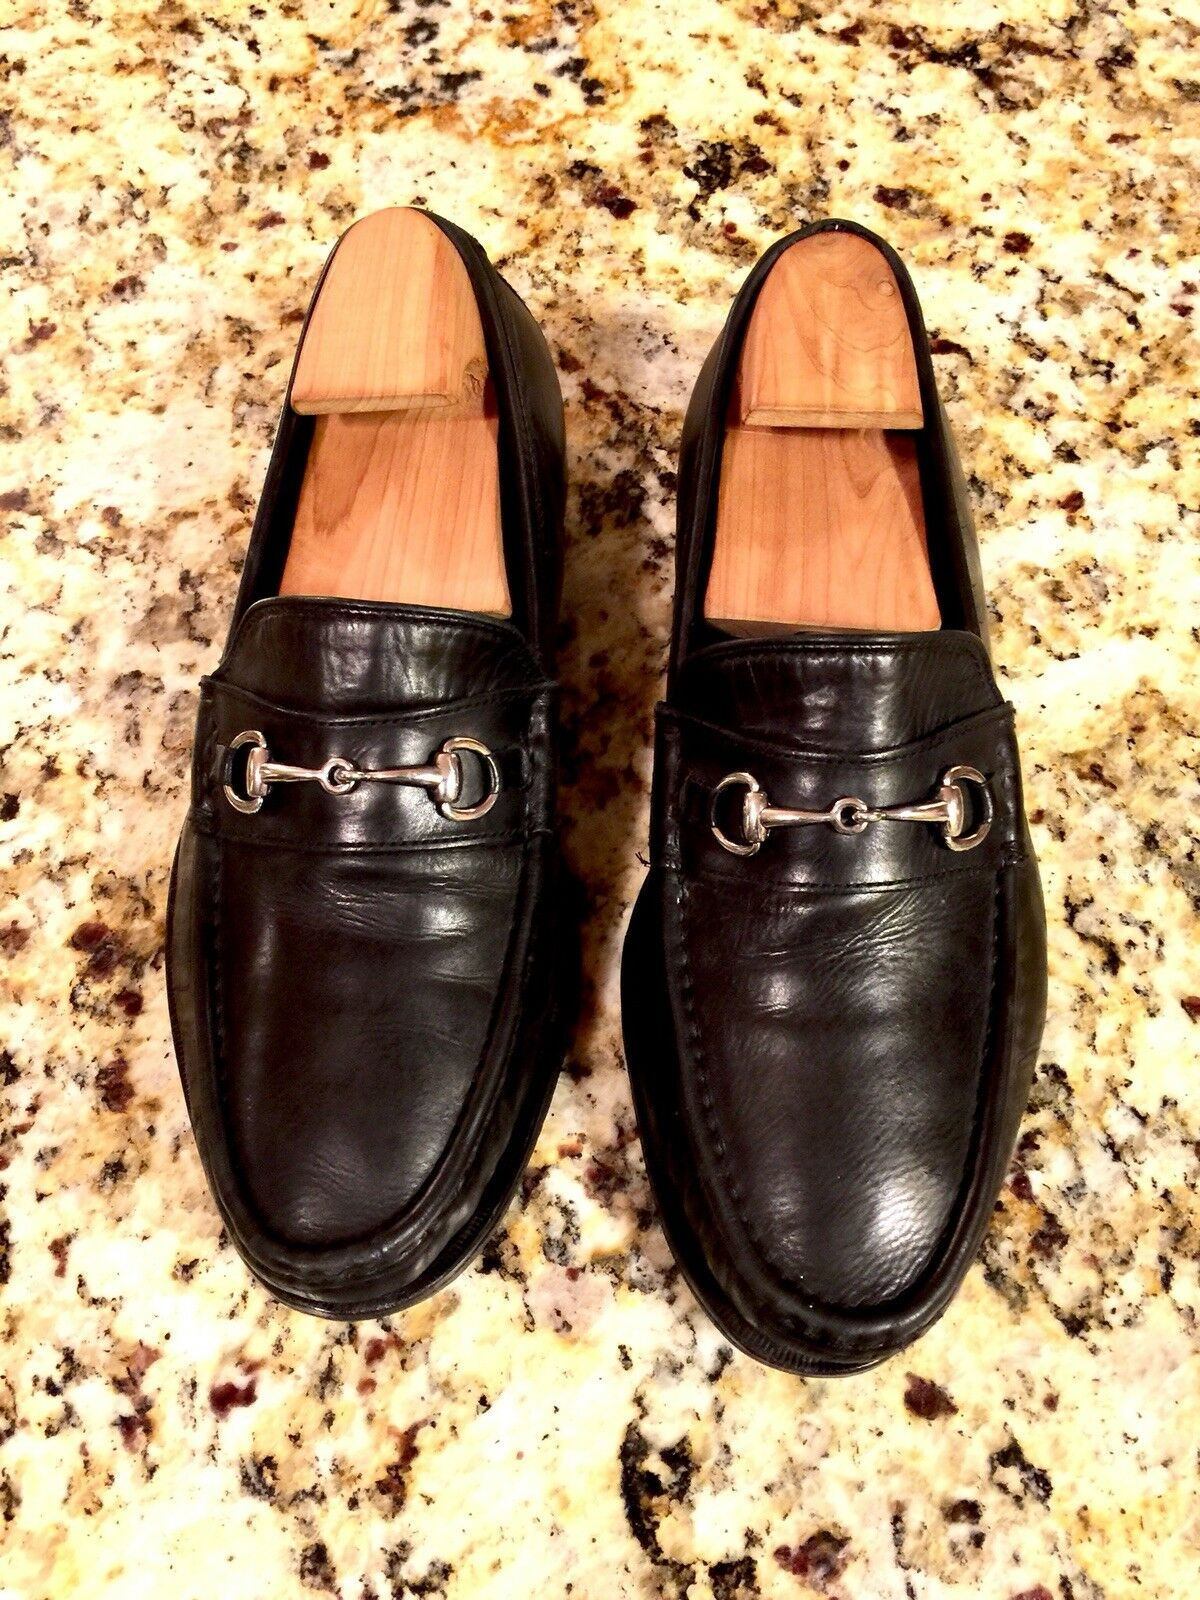 MENS COLE HAAN AIR AIDEN HORSEBIT LOAFERS SZ 9 W Black  LEATHER C09007